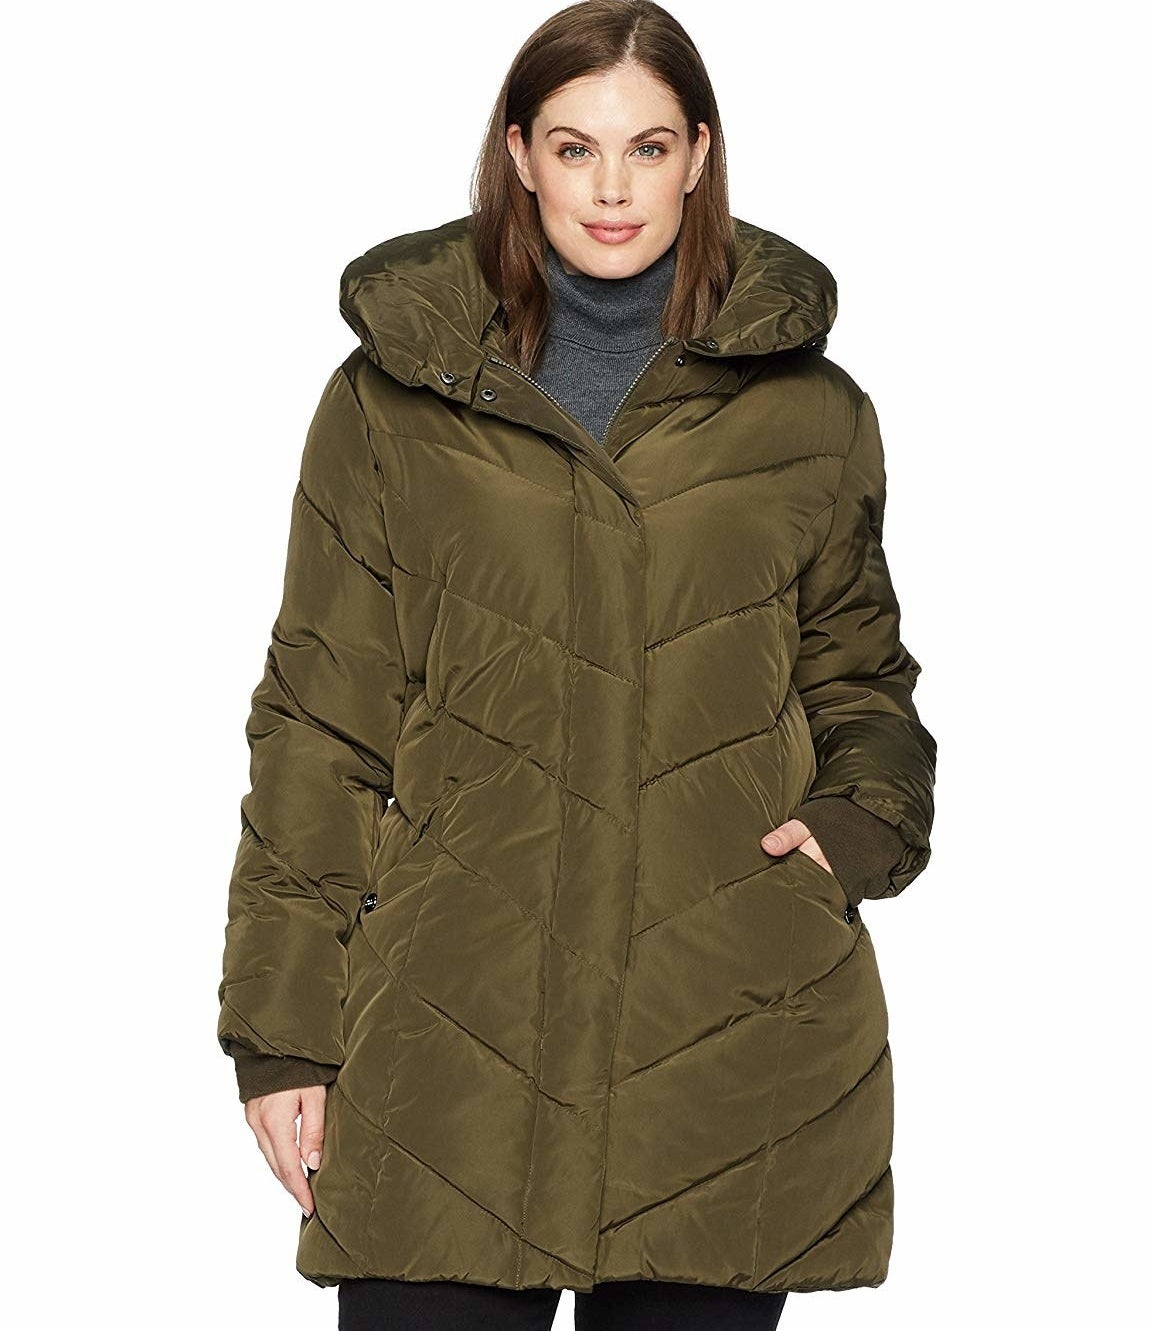 """Promising review: """"Excellent fit and very comfortable. It was a great selection for the cold NYC weather. Zipper was easy to move up and down, and the coat had room even with a sweater on underneath. I wear a 16/18, and ordered the 2XL. Perfect!"""" —SmurfettePrice: $67.99+ (available in three colors, and sizes 1XL–3XL)"""